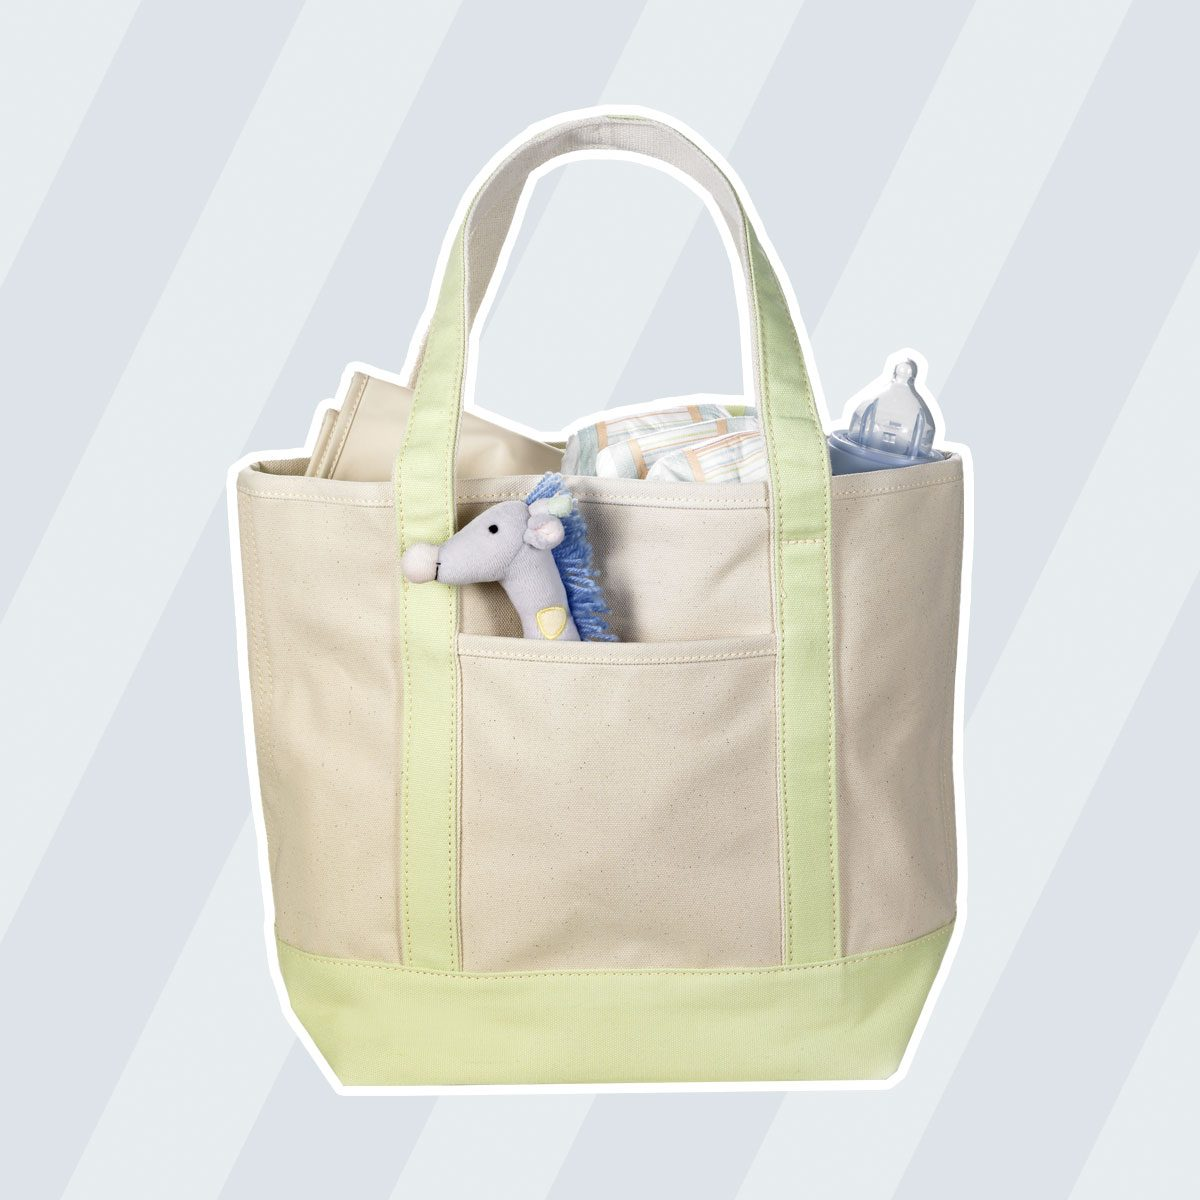 Canvas Bag With Baby Supplies uses for reusable bags